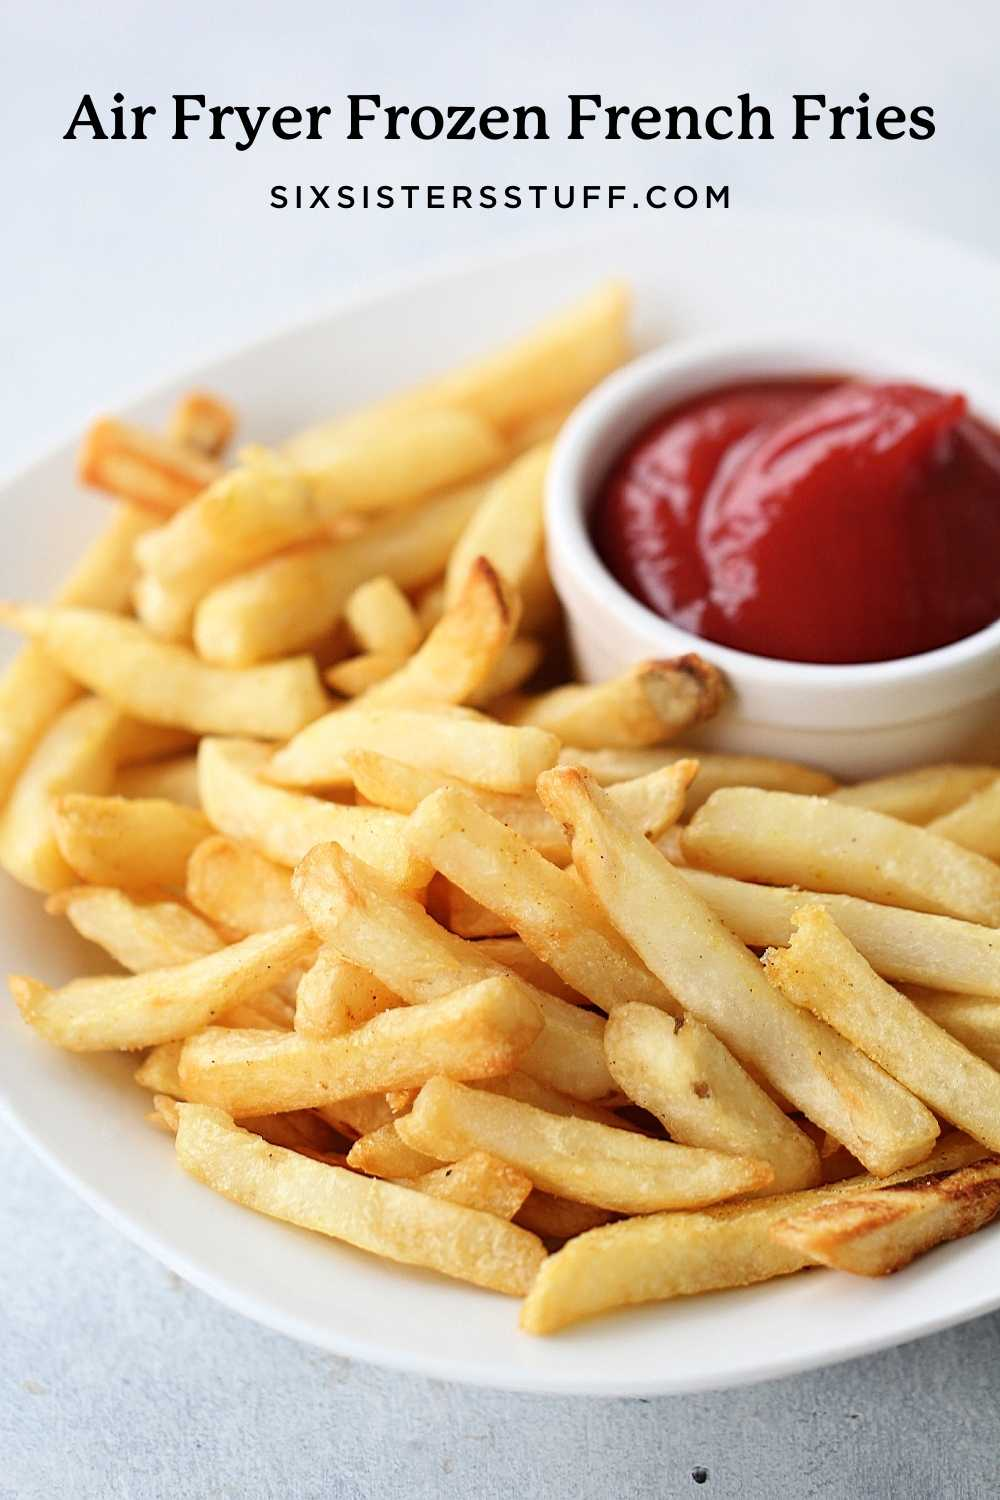 french fries that have been cooked in the air fryer with ketchup on the side